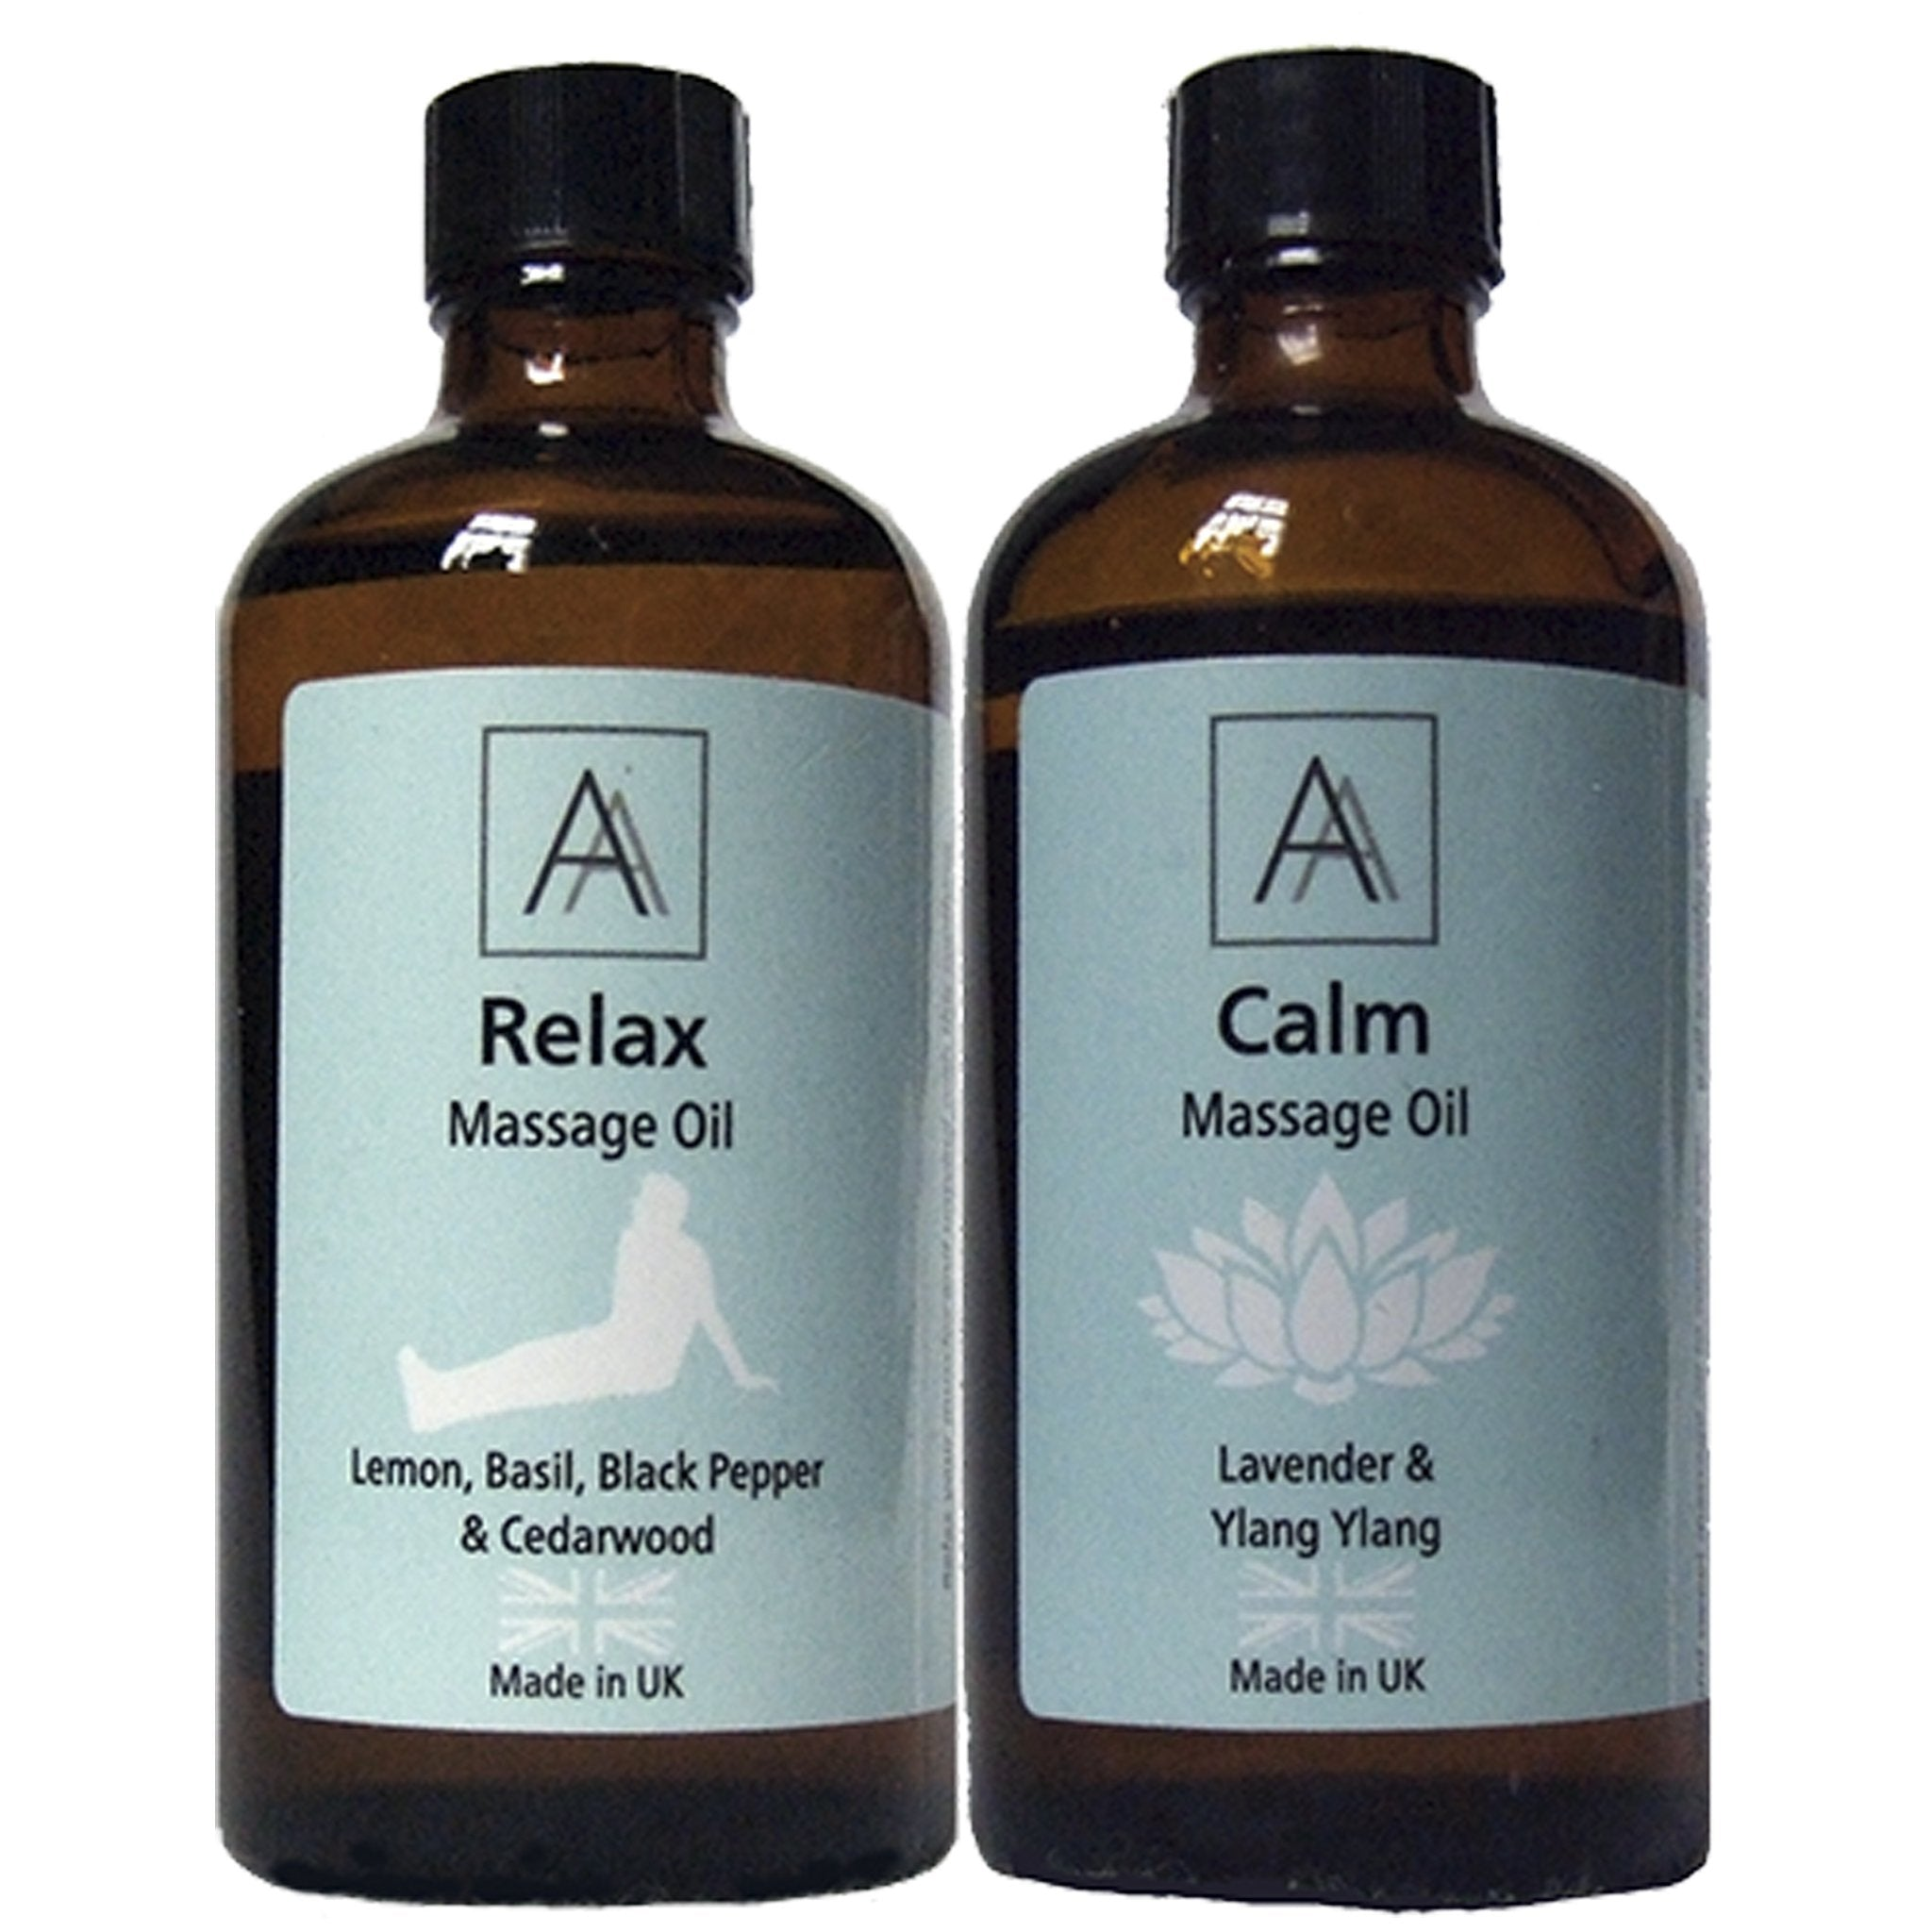 Relax and Calm Massage Oil's